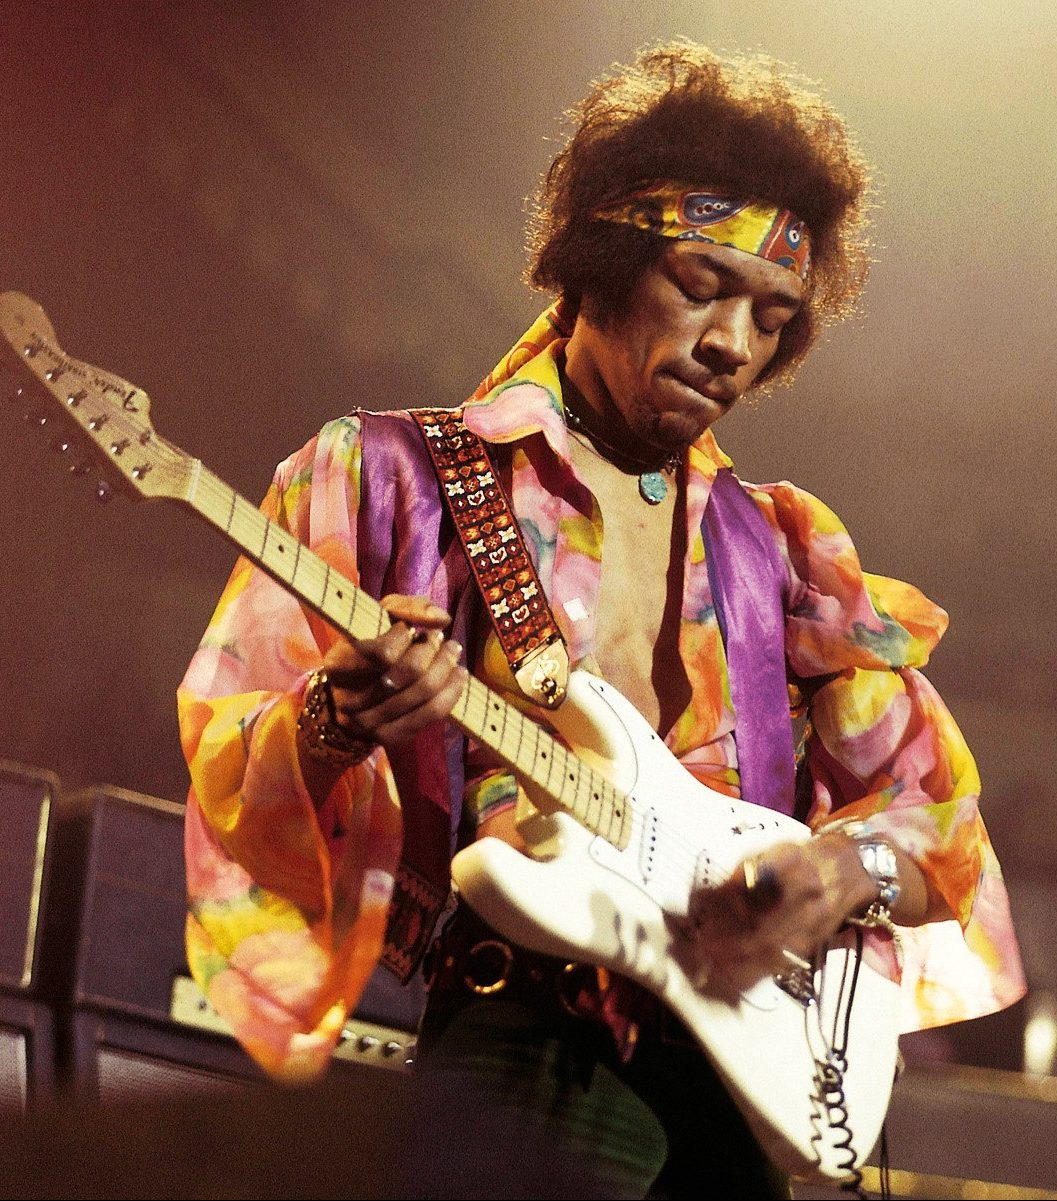 jimi hendrix performing in 1969 e1574416979430 25 Celebrities You Didn't Know Served In The Military